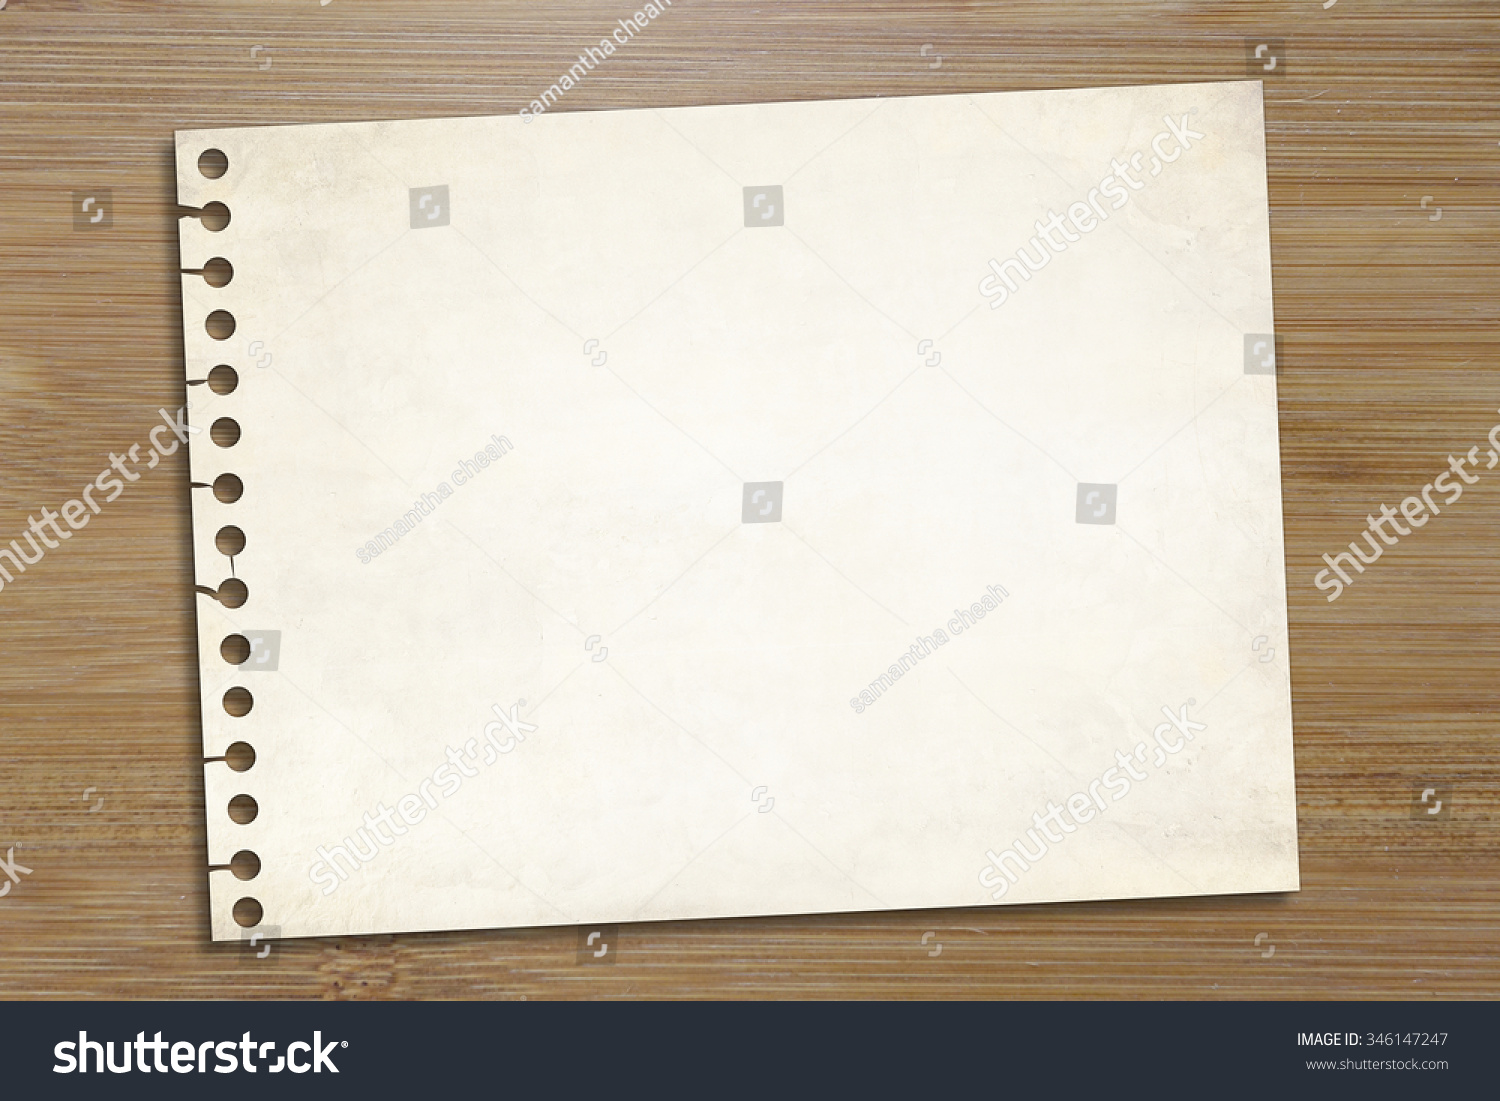 royalty blank note paper over wooden background 346147247 blank note paper over wooden background office use memo notepad business school education idea template